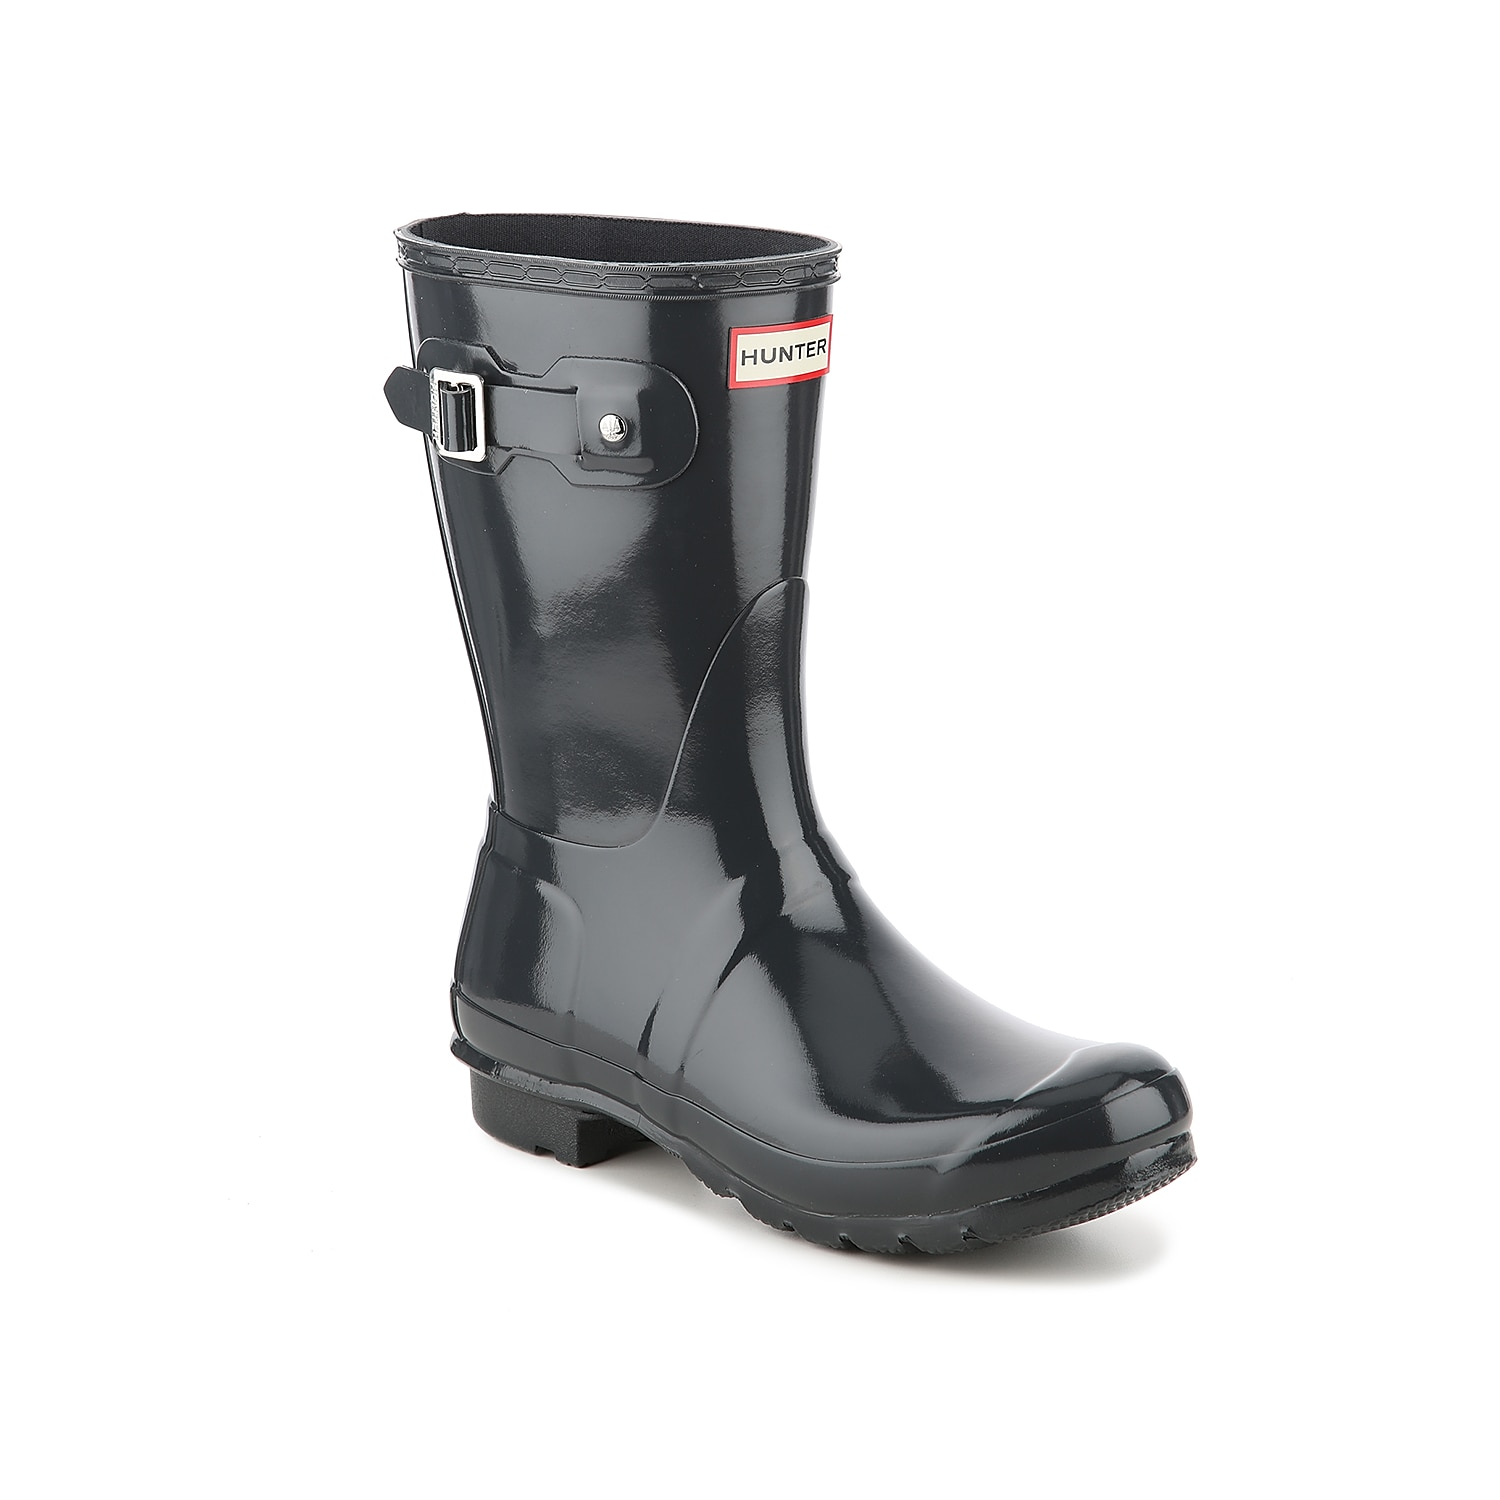 Carefully crafted from 28 separate parts, the Hunter Original Short Gloss rain boot is assembled by hand to ensure superior quality. Industry-approved waterproofing means that these weather-ready boots will hold up to a wide range of conditions, from pleasant drizzles to cracking thunderstorms.Click here for Boot Measuring Guide.